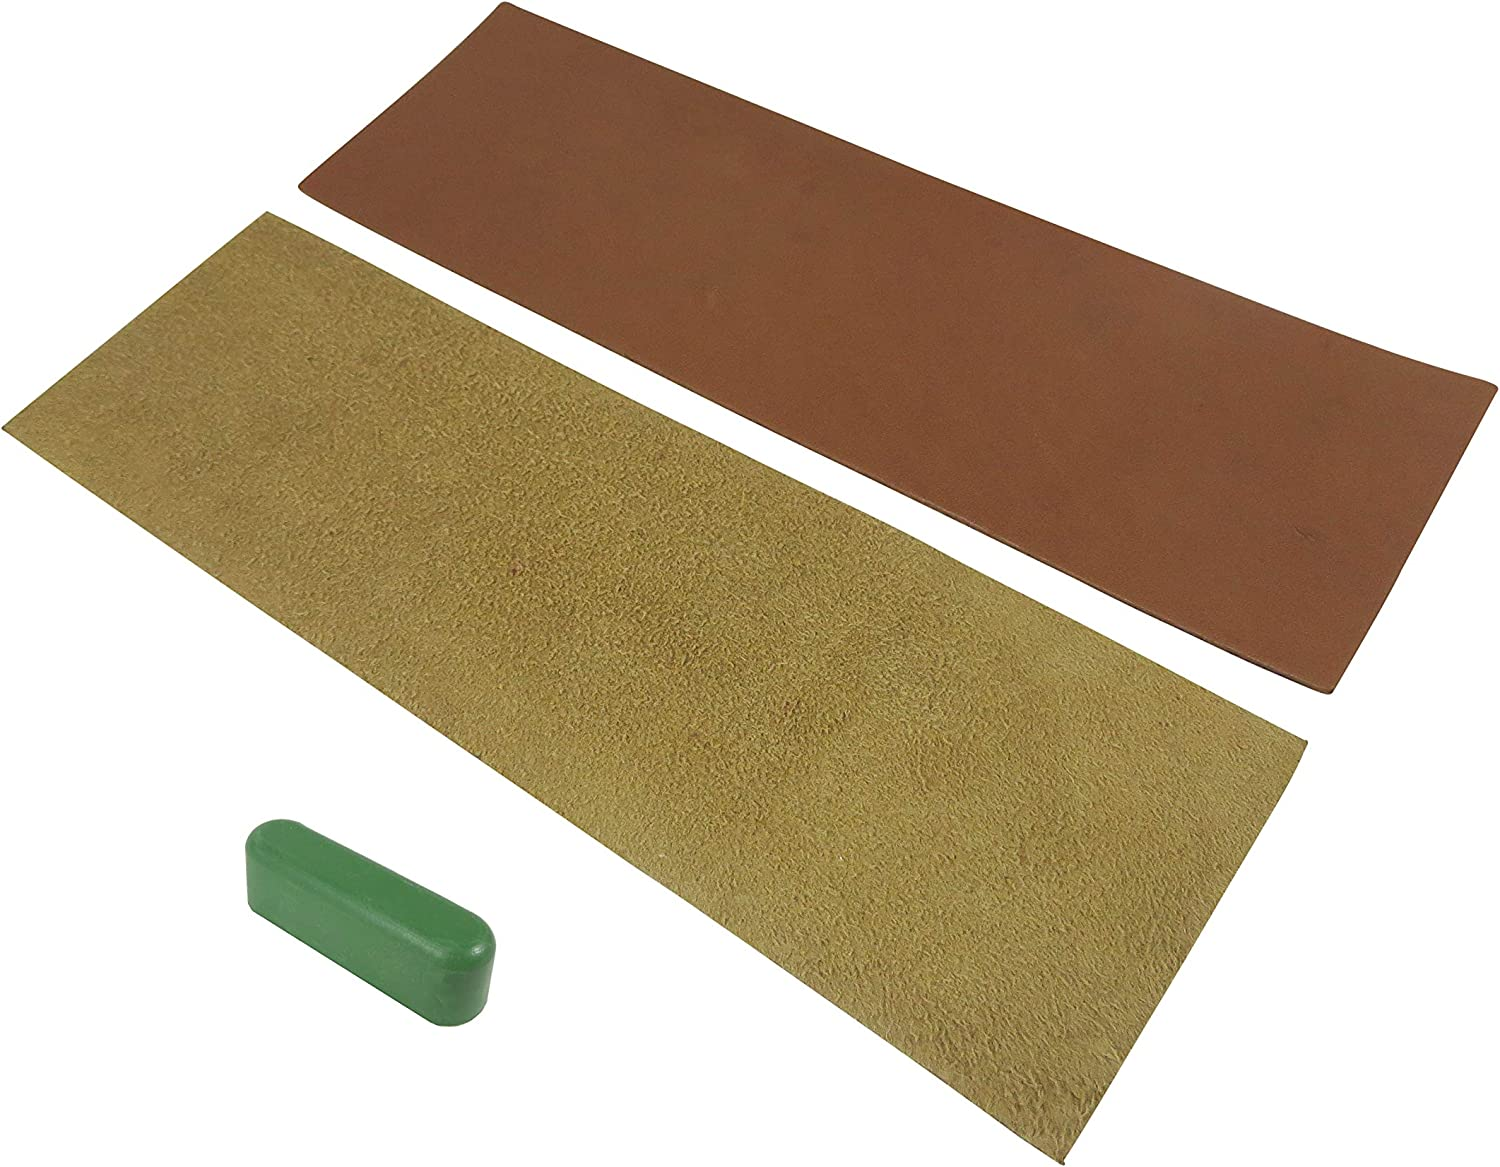 Taytools 2 Piece French Leather Strop Kit 3 x 10 Inches Each with 1.2 Ounce Bar Green Chromium Oxide 0.5 Micron Micro Fine Polishing Compound